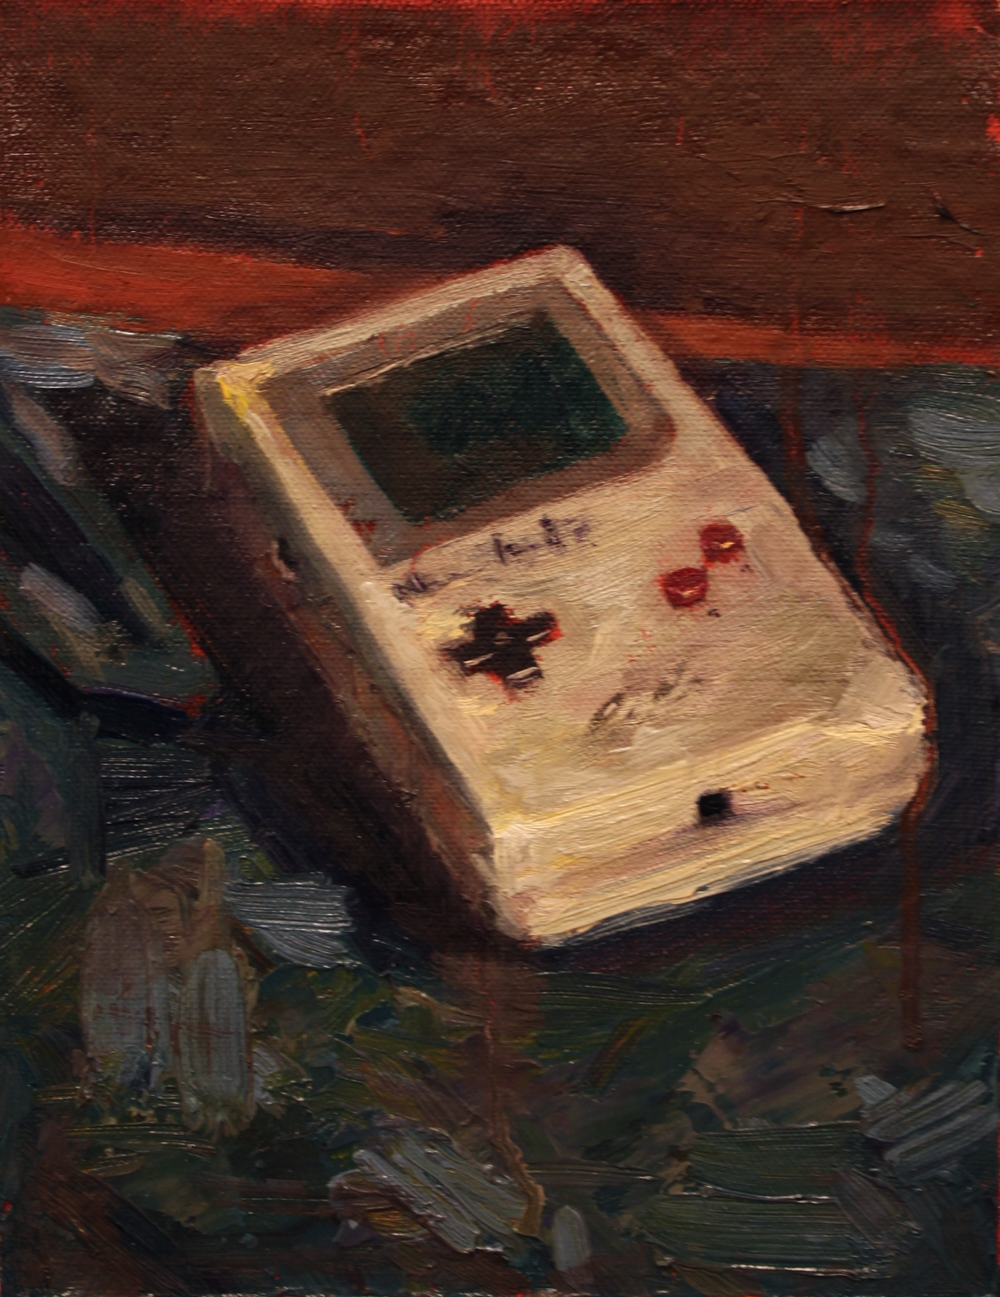 Nintendos and Don'ts, 2014, oil on canvas, 9 x 6 inches